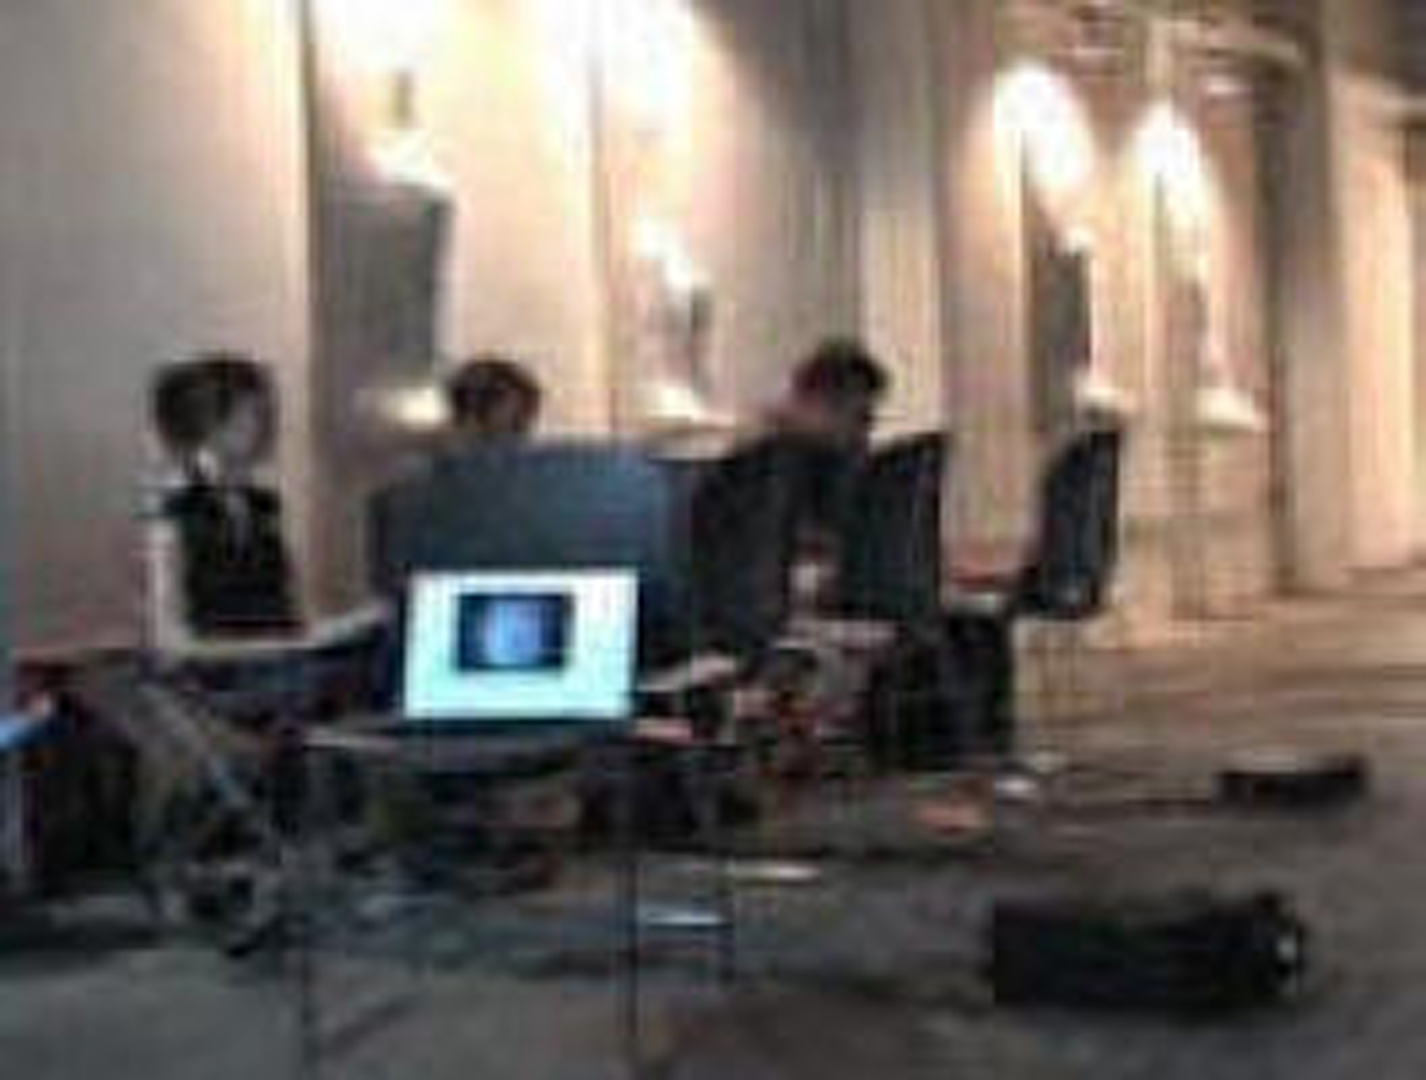 ©2005, Mobile Performance Group, Parking Spaces